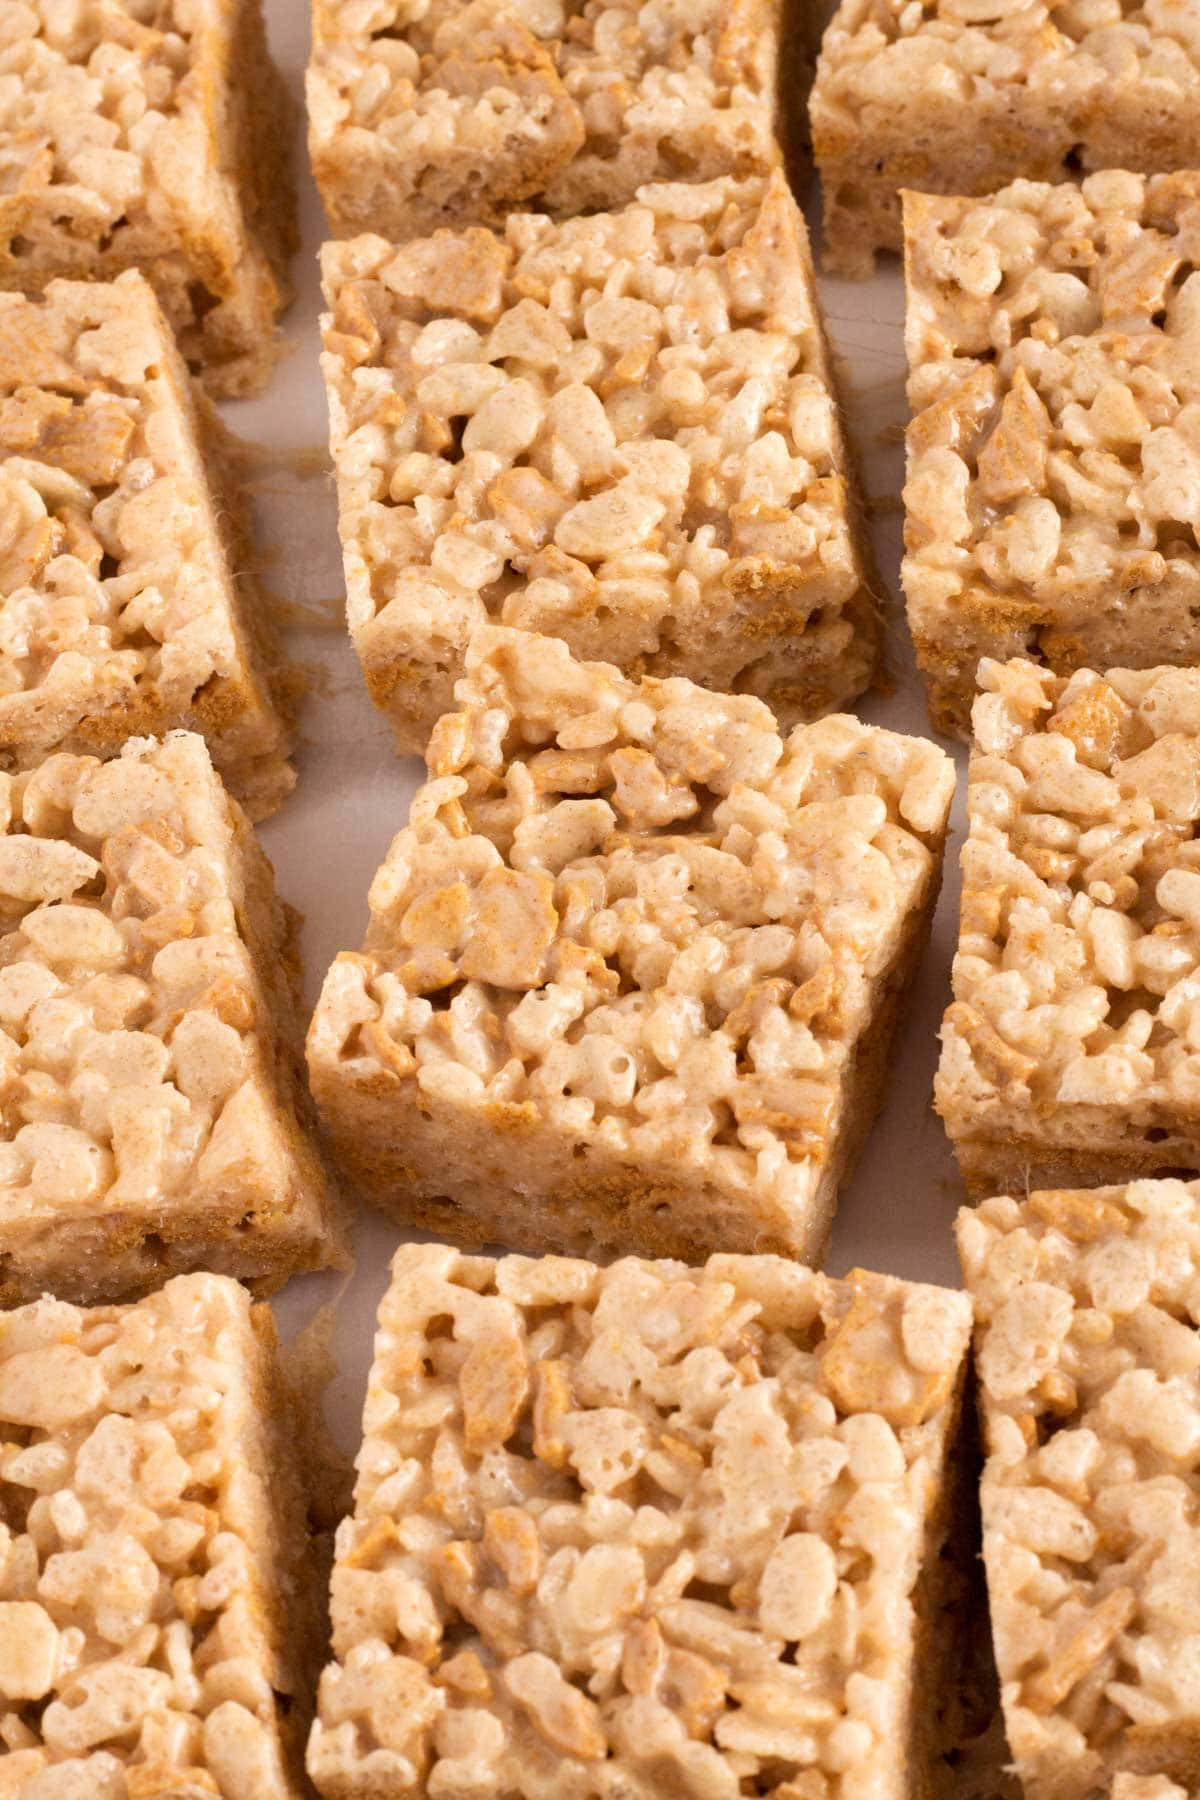 Square golden graham treats arranged on counter.